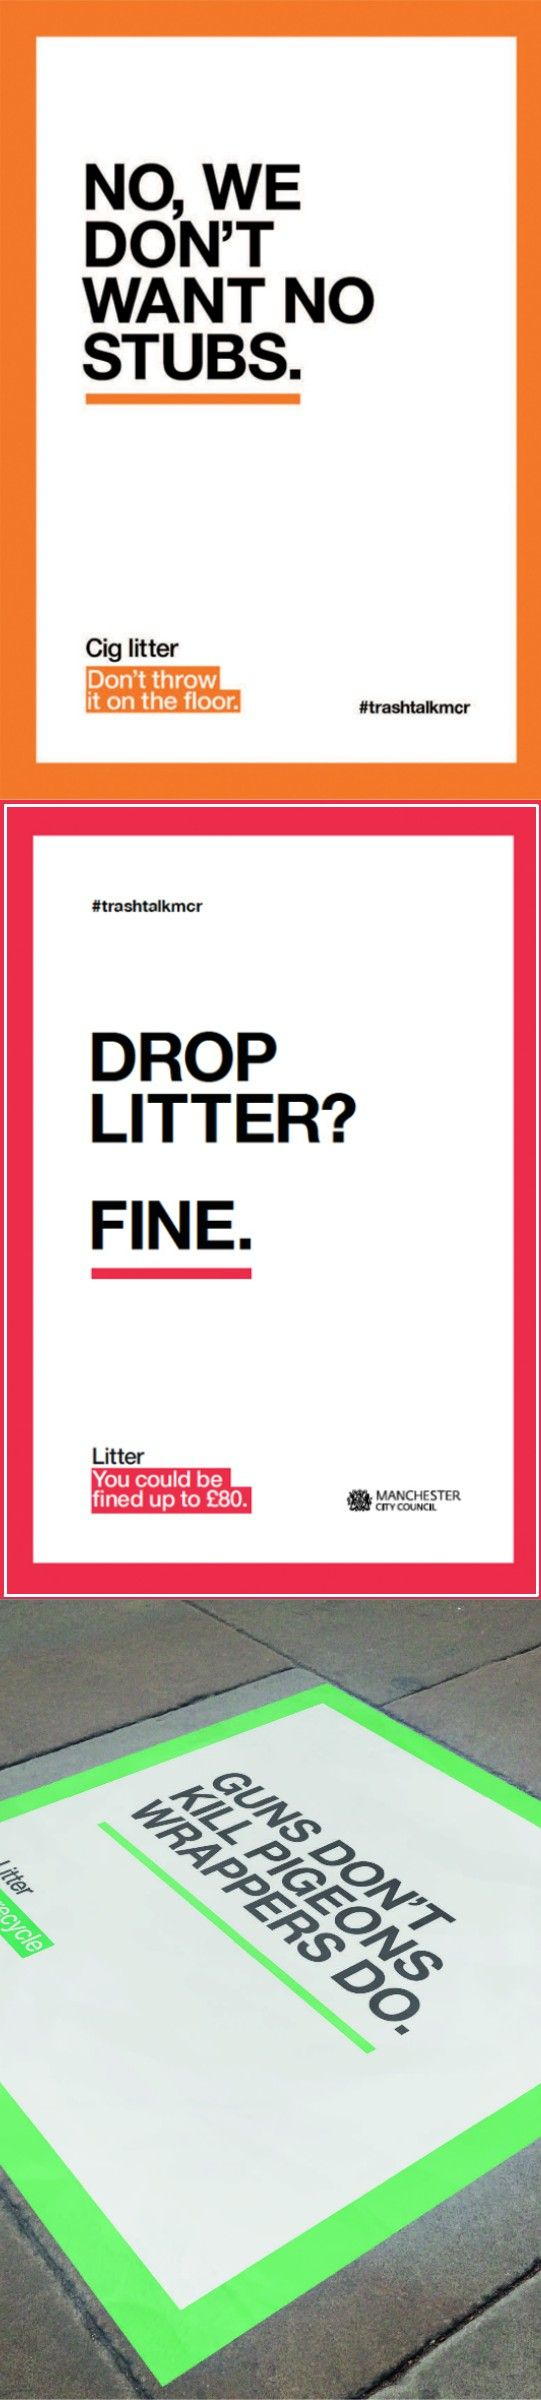 Advertising-Campaign-Manchester-campaign-to-stop-people-from-littering.-Playful-approach-with-copy-re Advertising Campaign : Manchester campaign to stop people from littering. Playful approach with copy re...